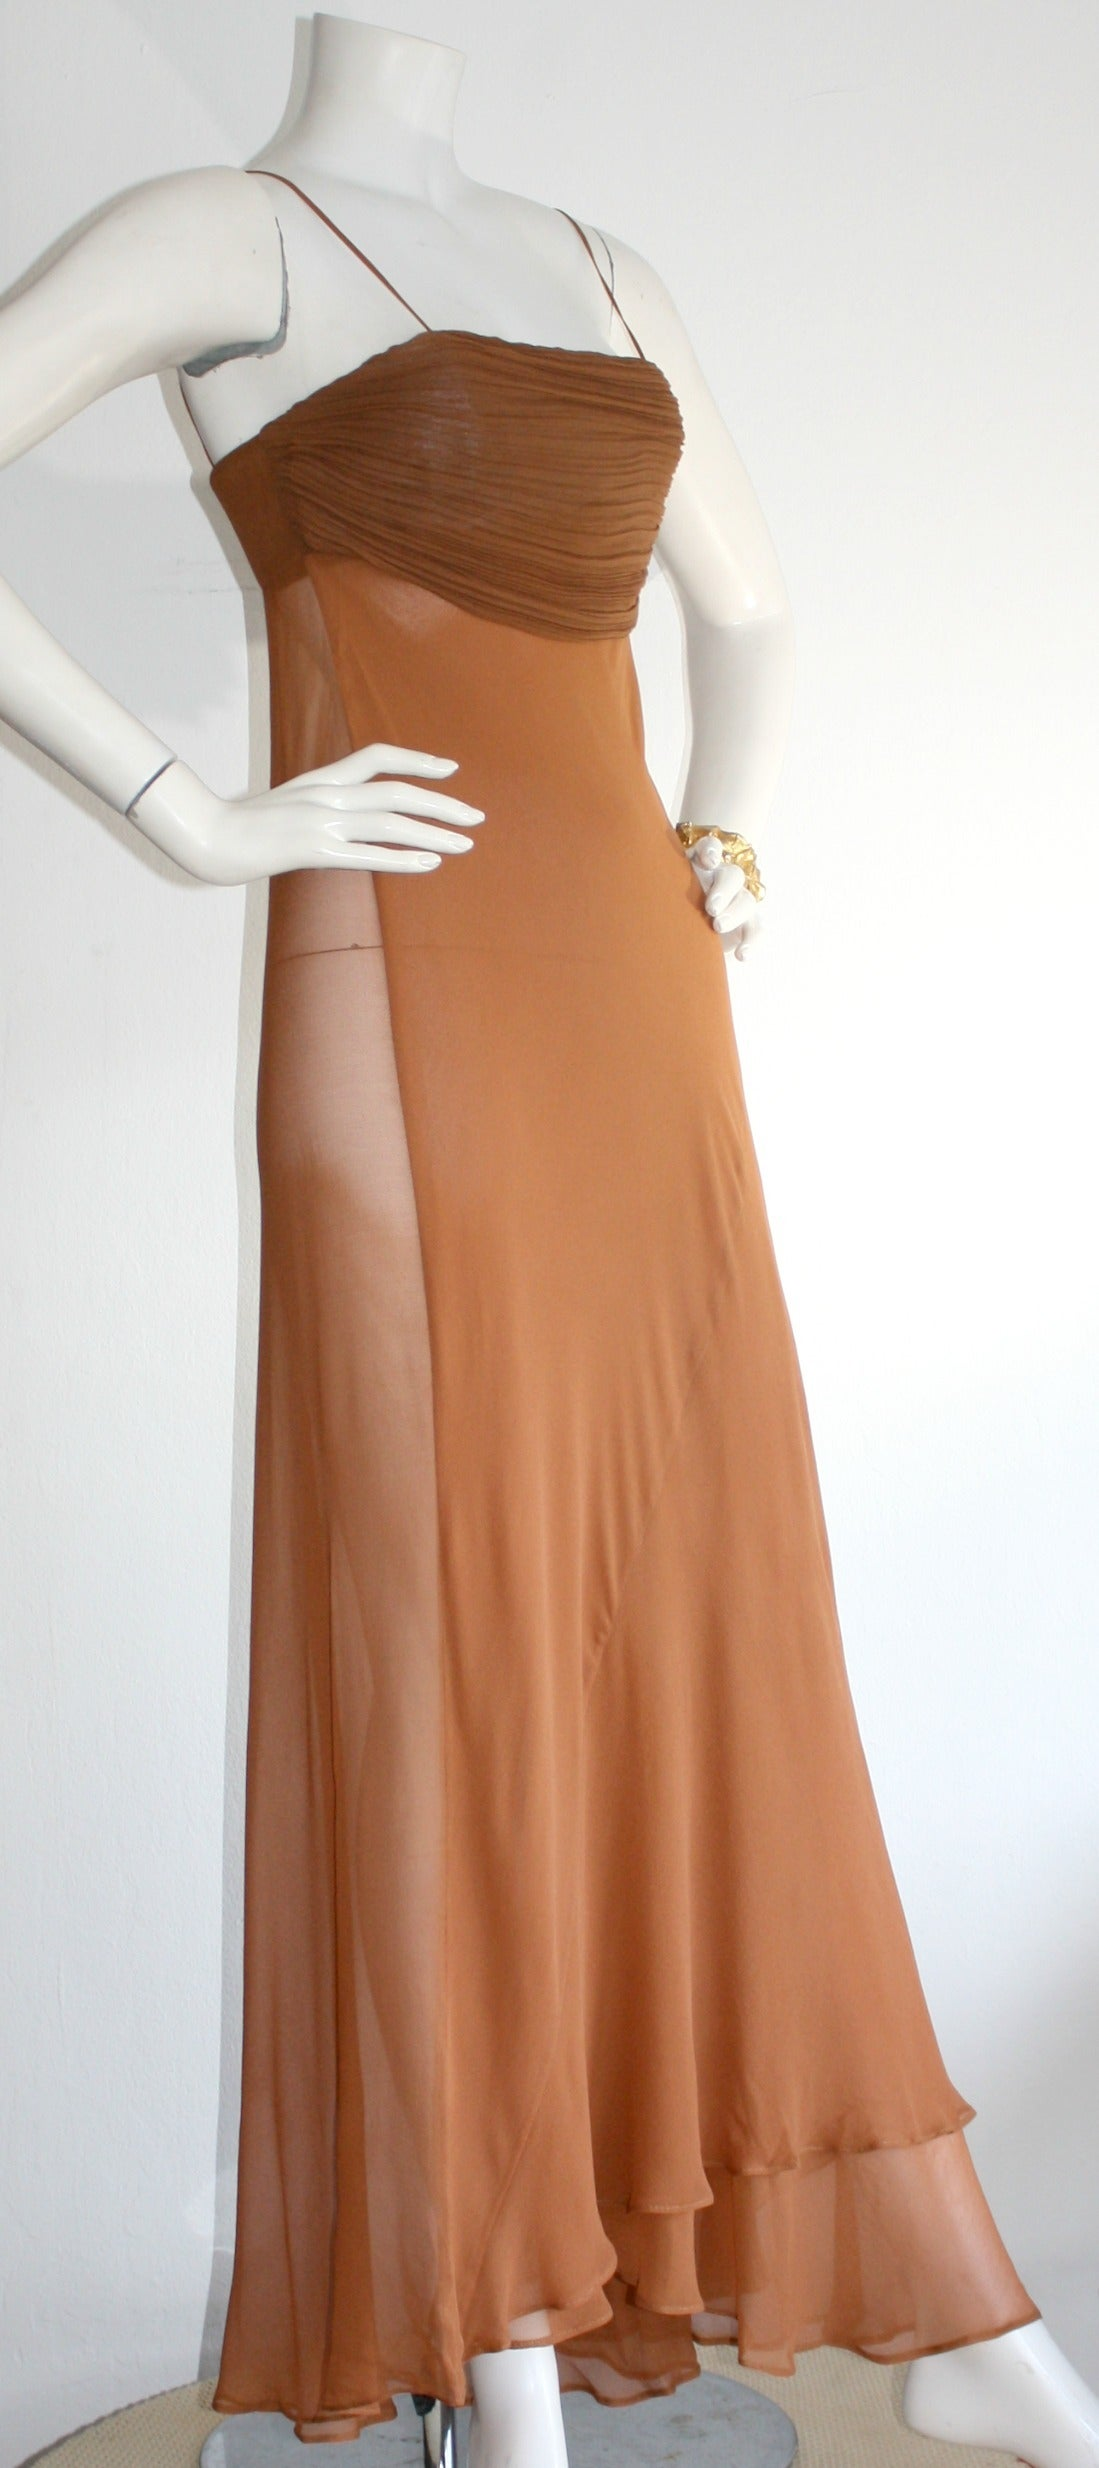 Women's Exquisite Vintage Alberta Ferretti Grecian Goddess Chiffon Gown And Jacket For Sale